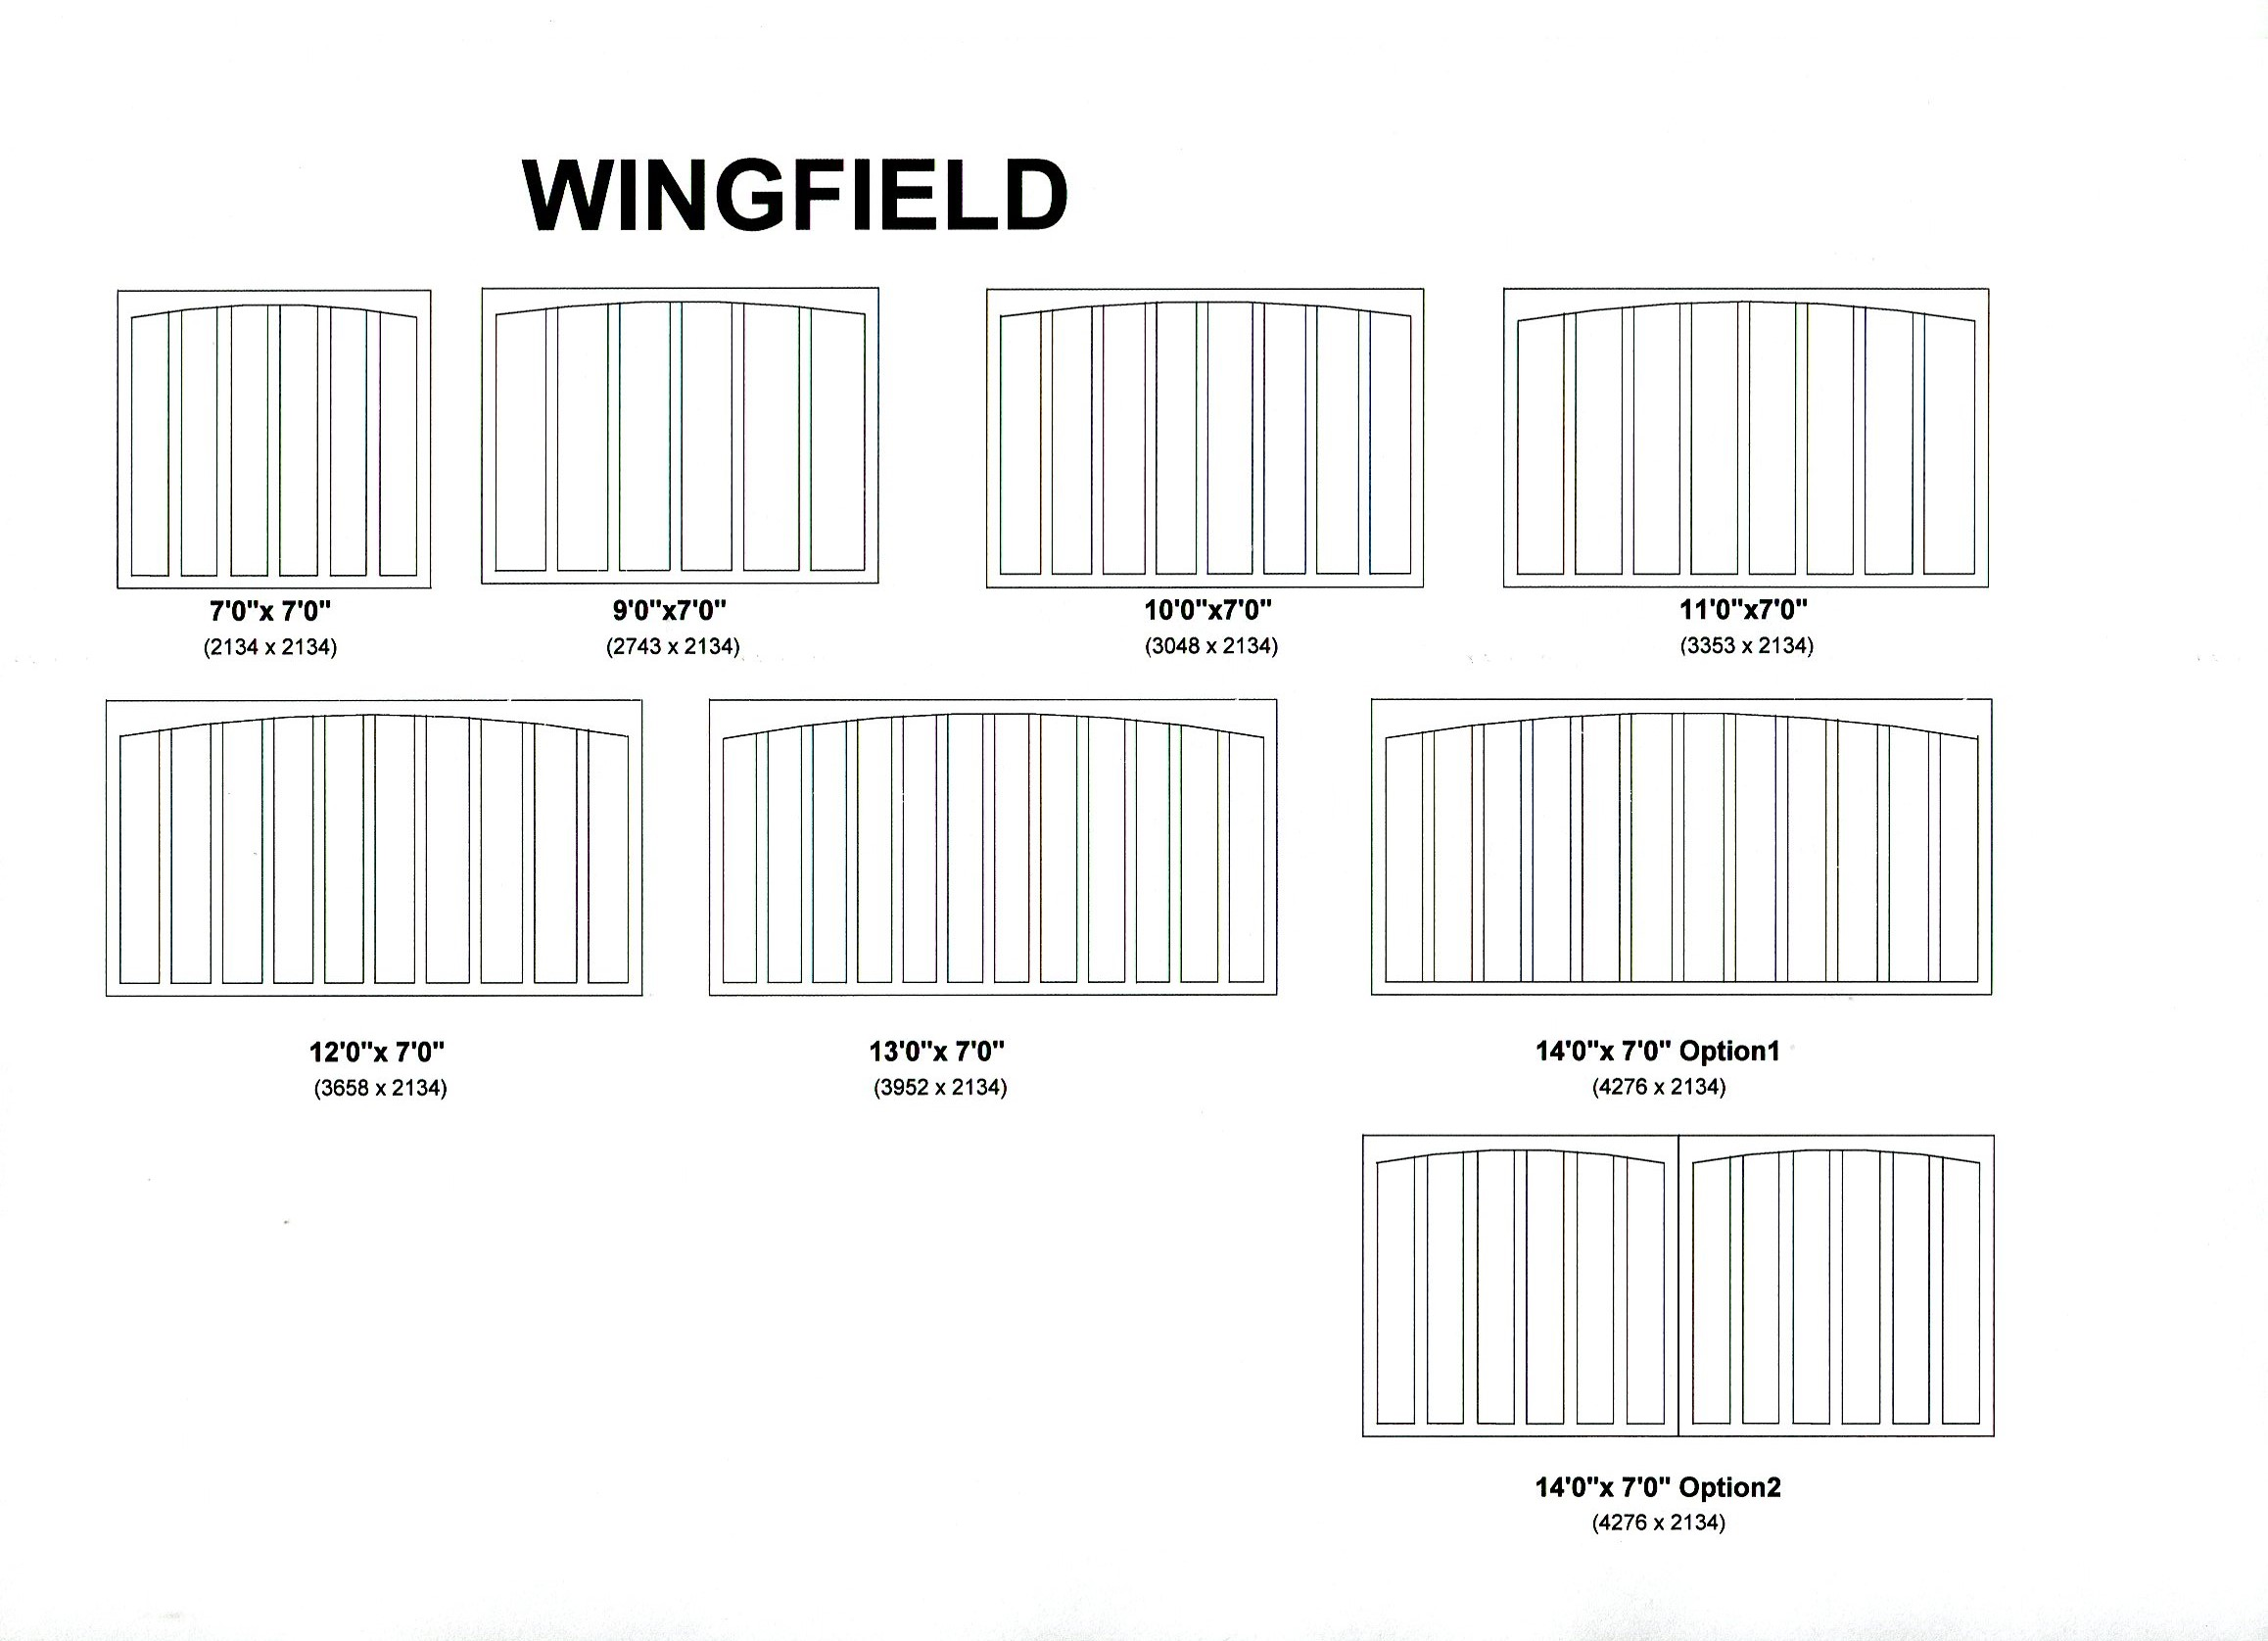 Cedar Door Wingfield design options